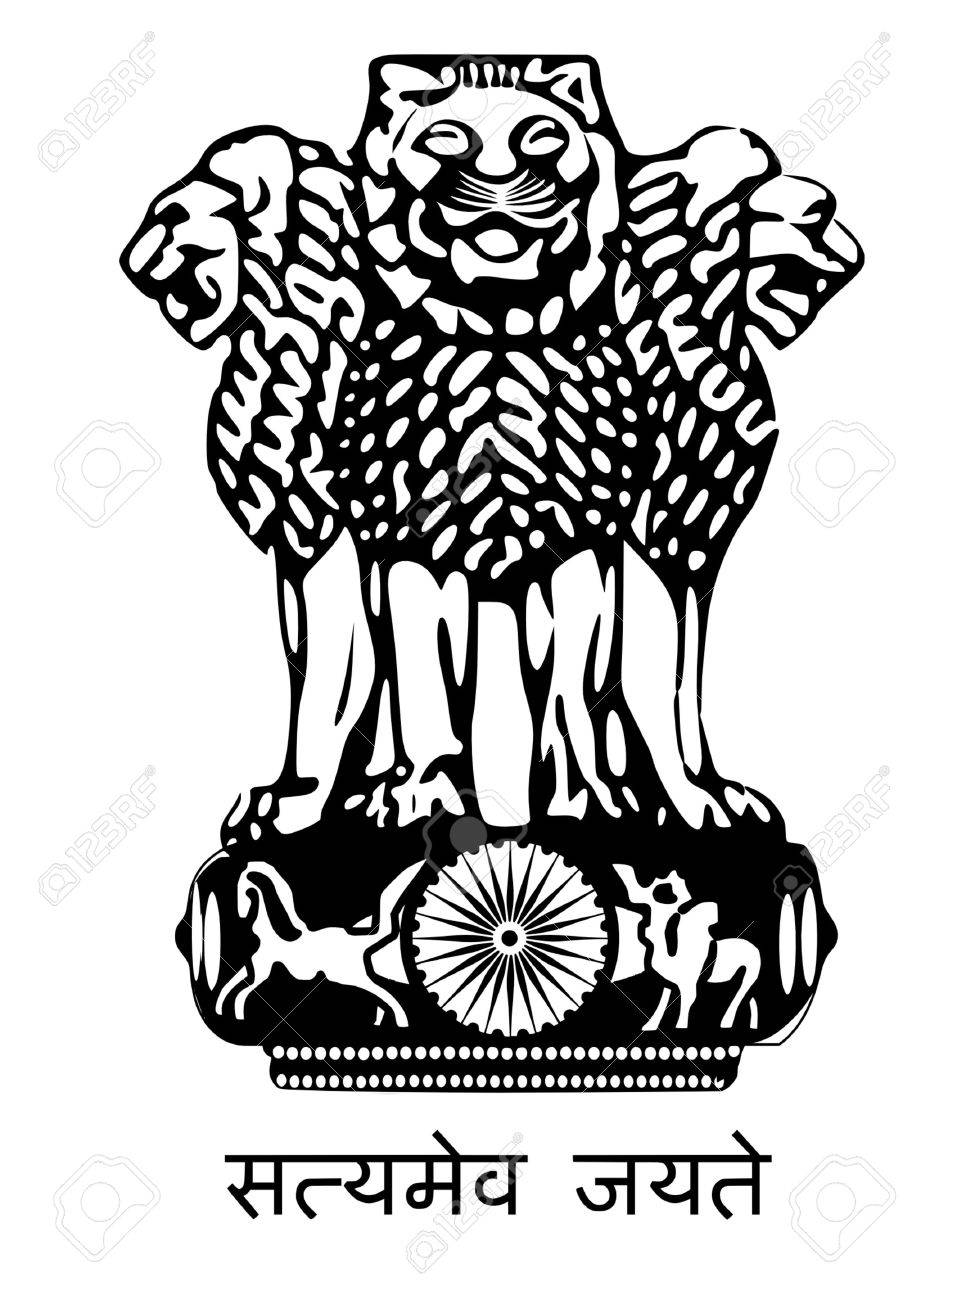 Coat of arms of India Stock Vector - 11751350